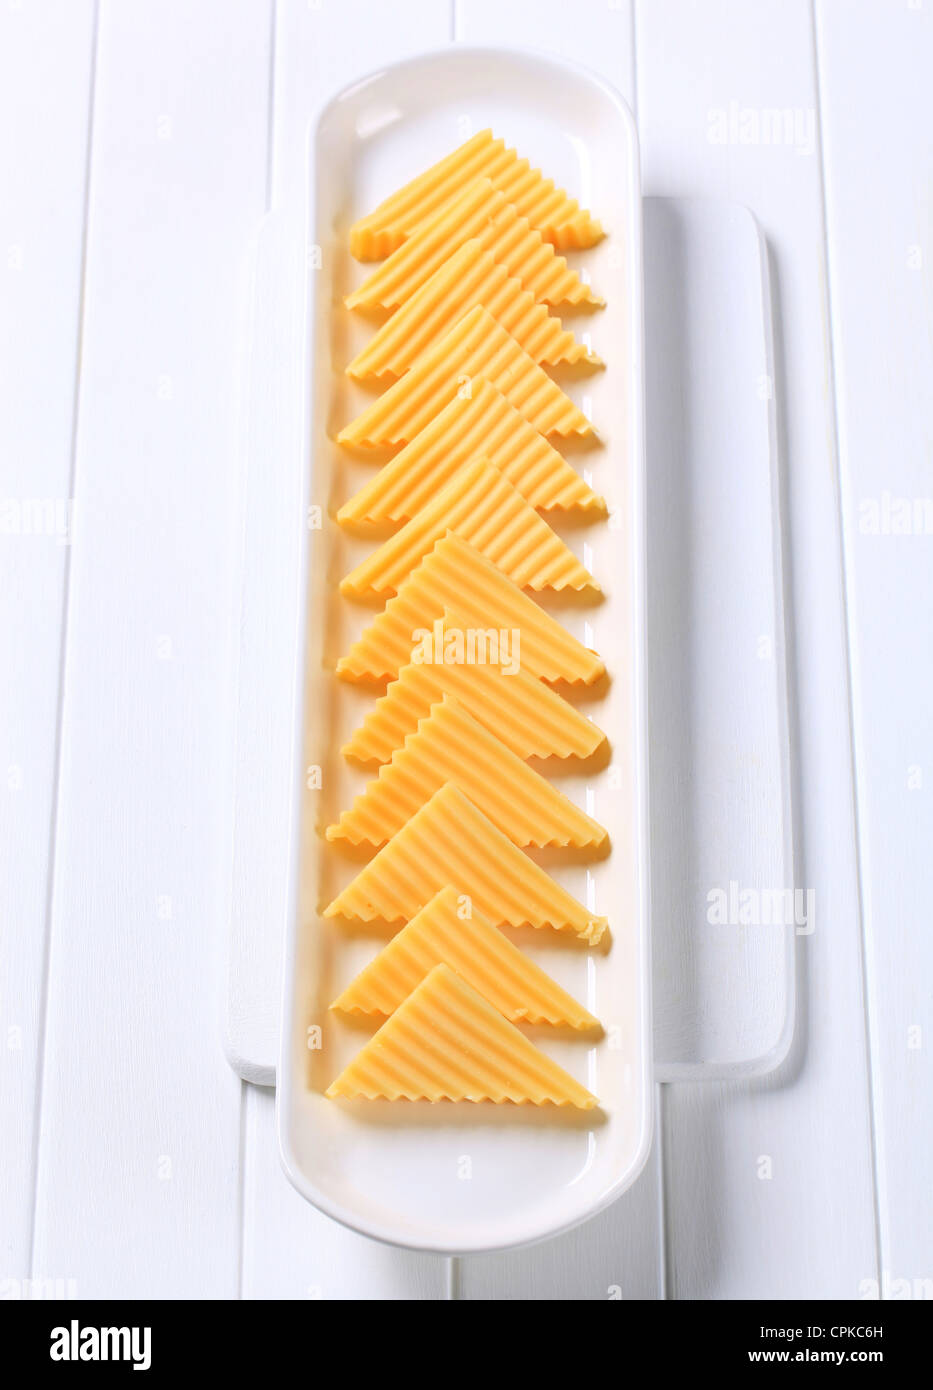 Hard cheese cut into triangles - Stock Image